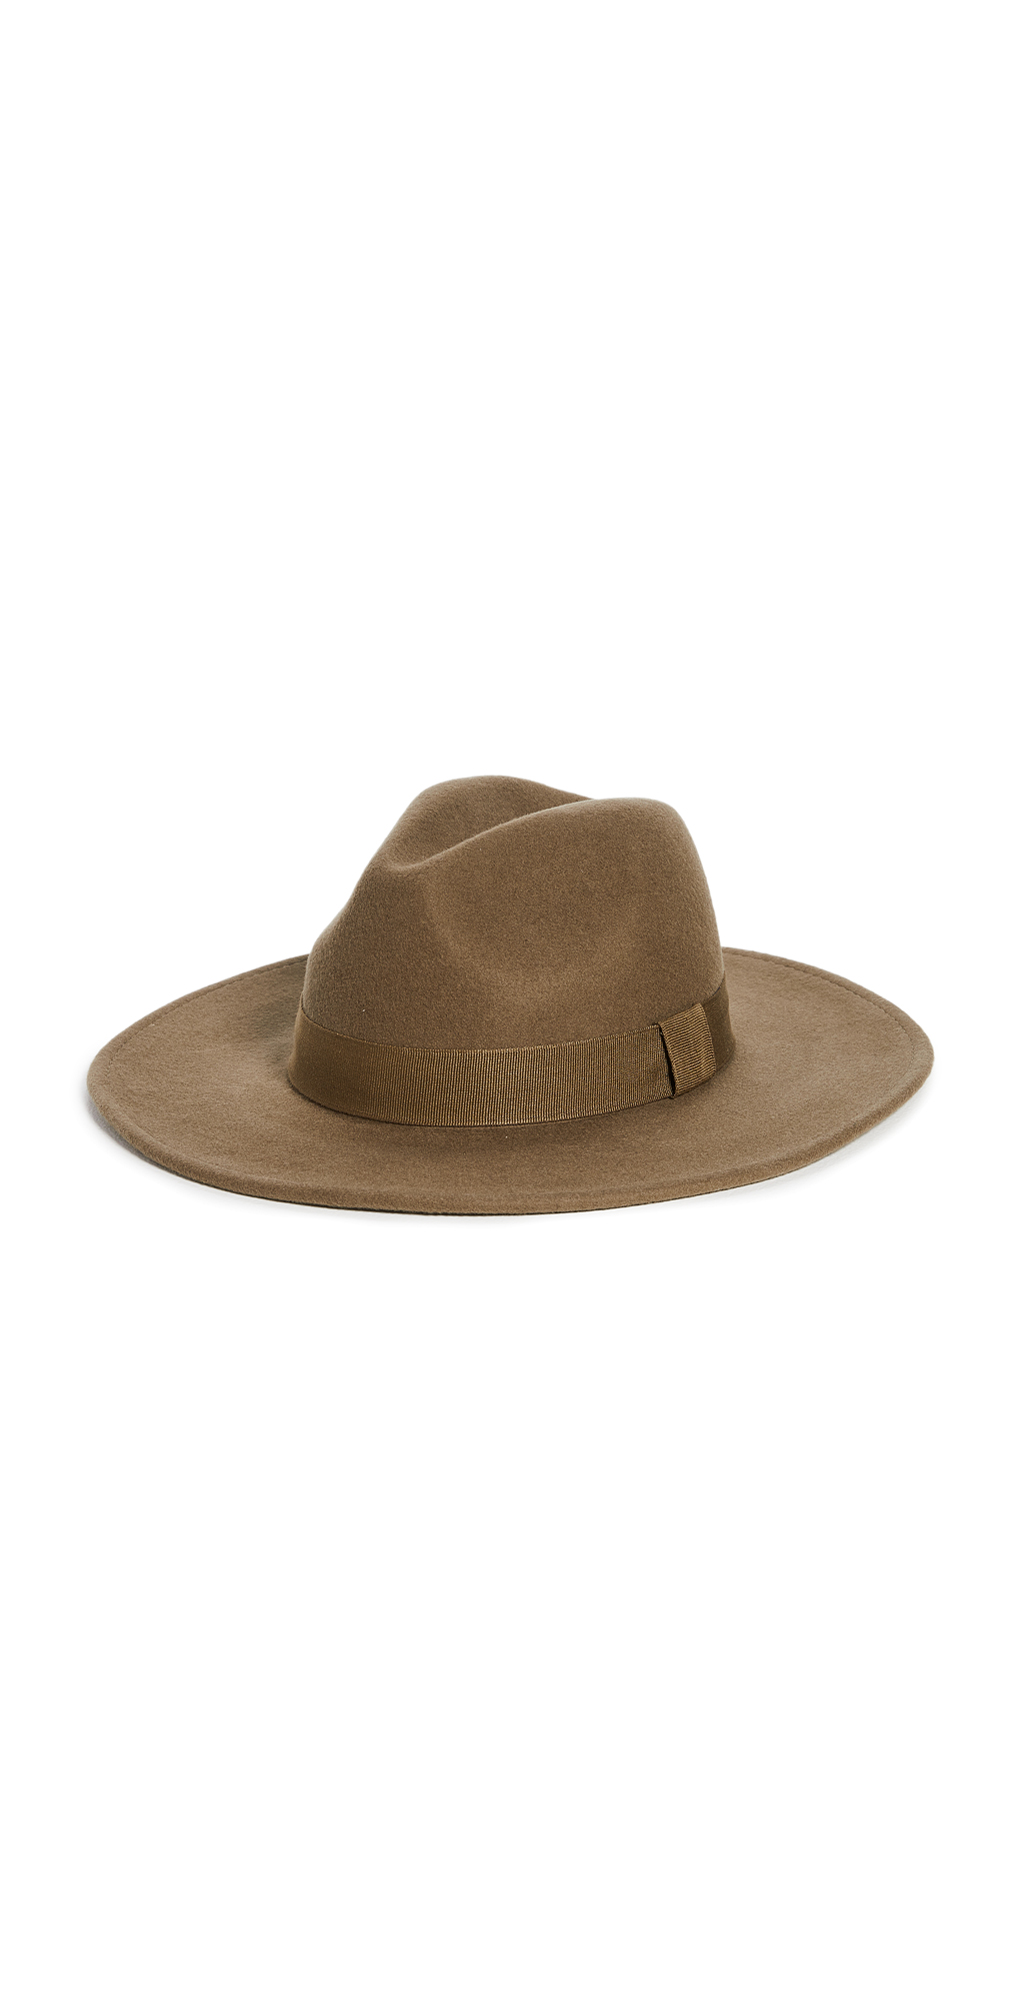 Madewell Simple Shaped Felt Hat